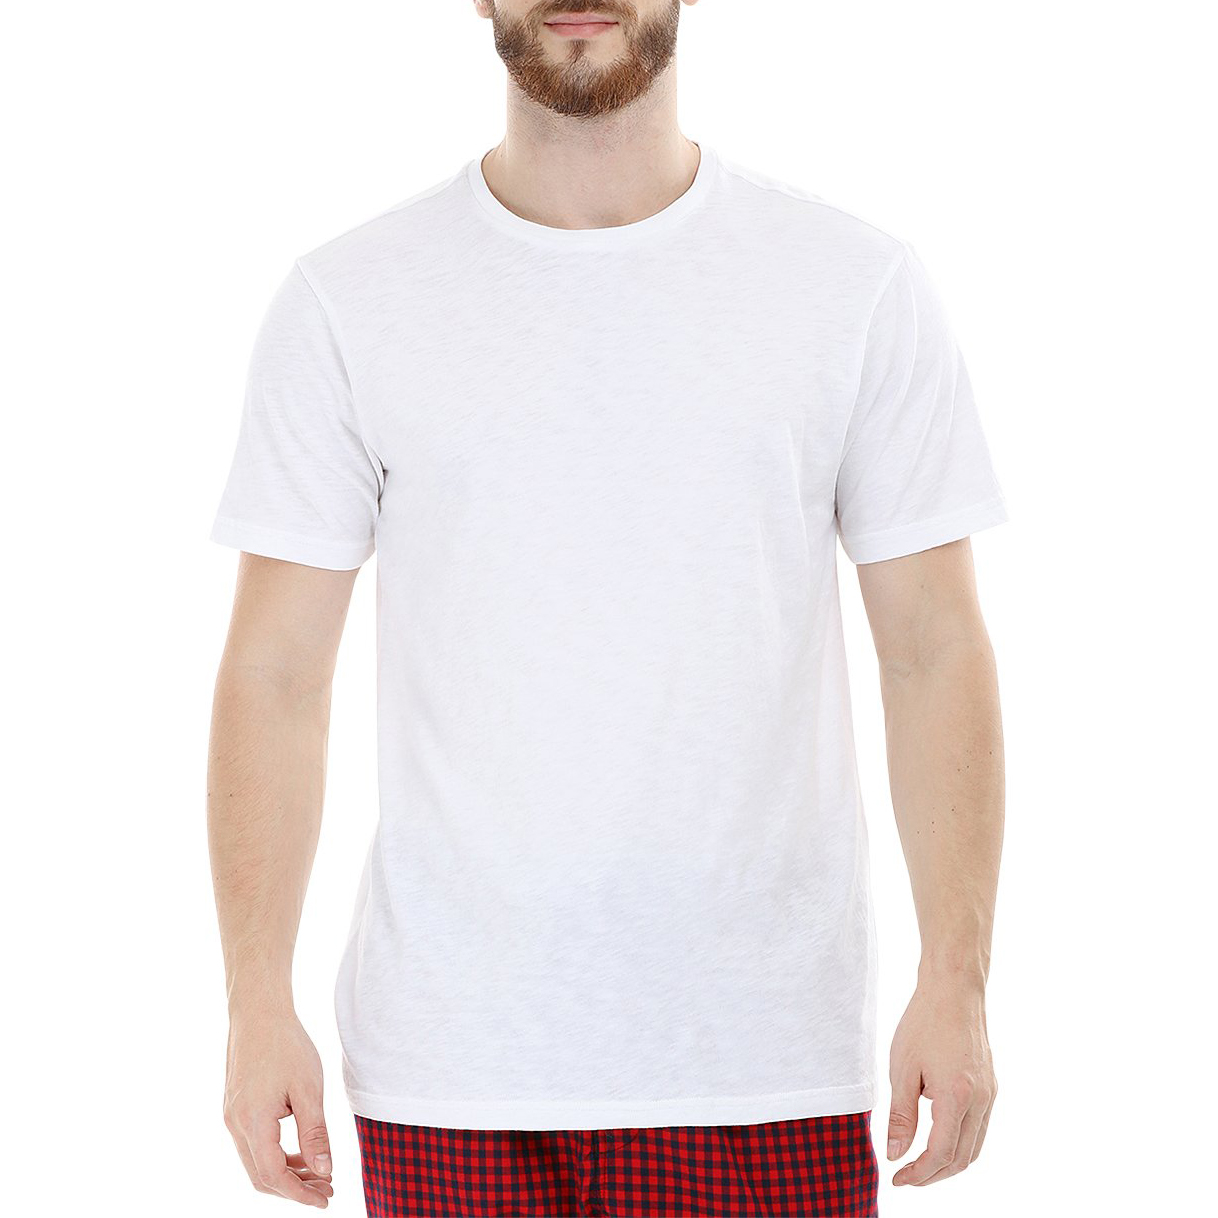 International Basic Source Crew Neck White T-shirt Cotton Fabric For Men